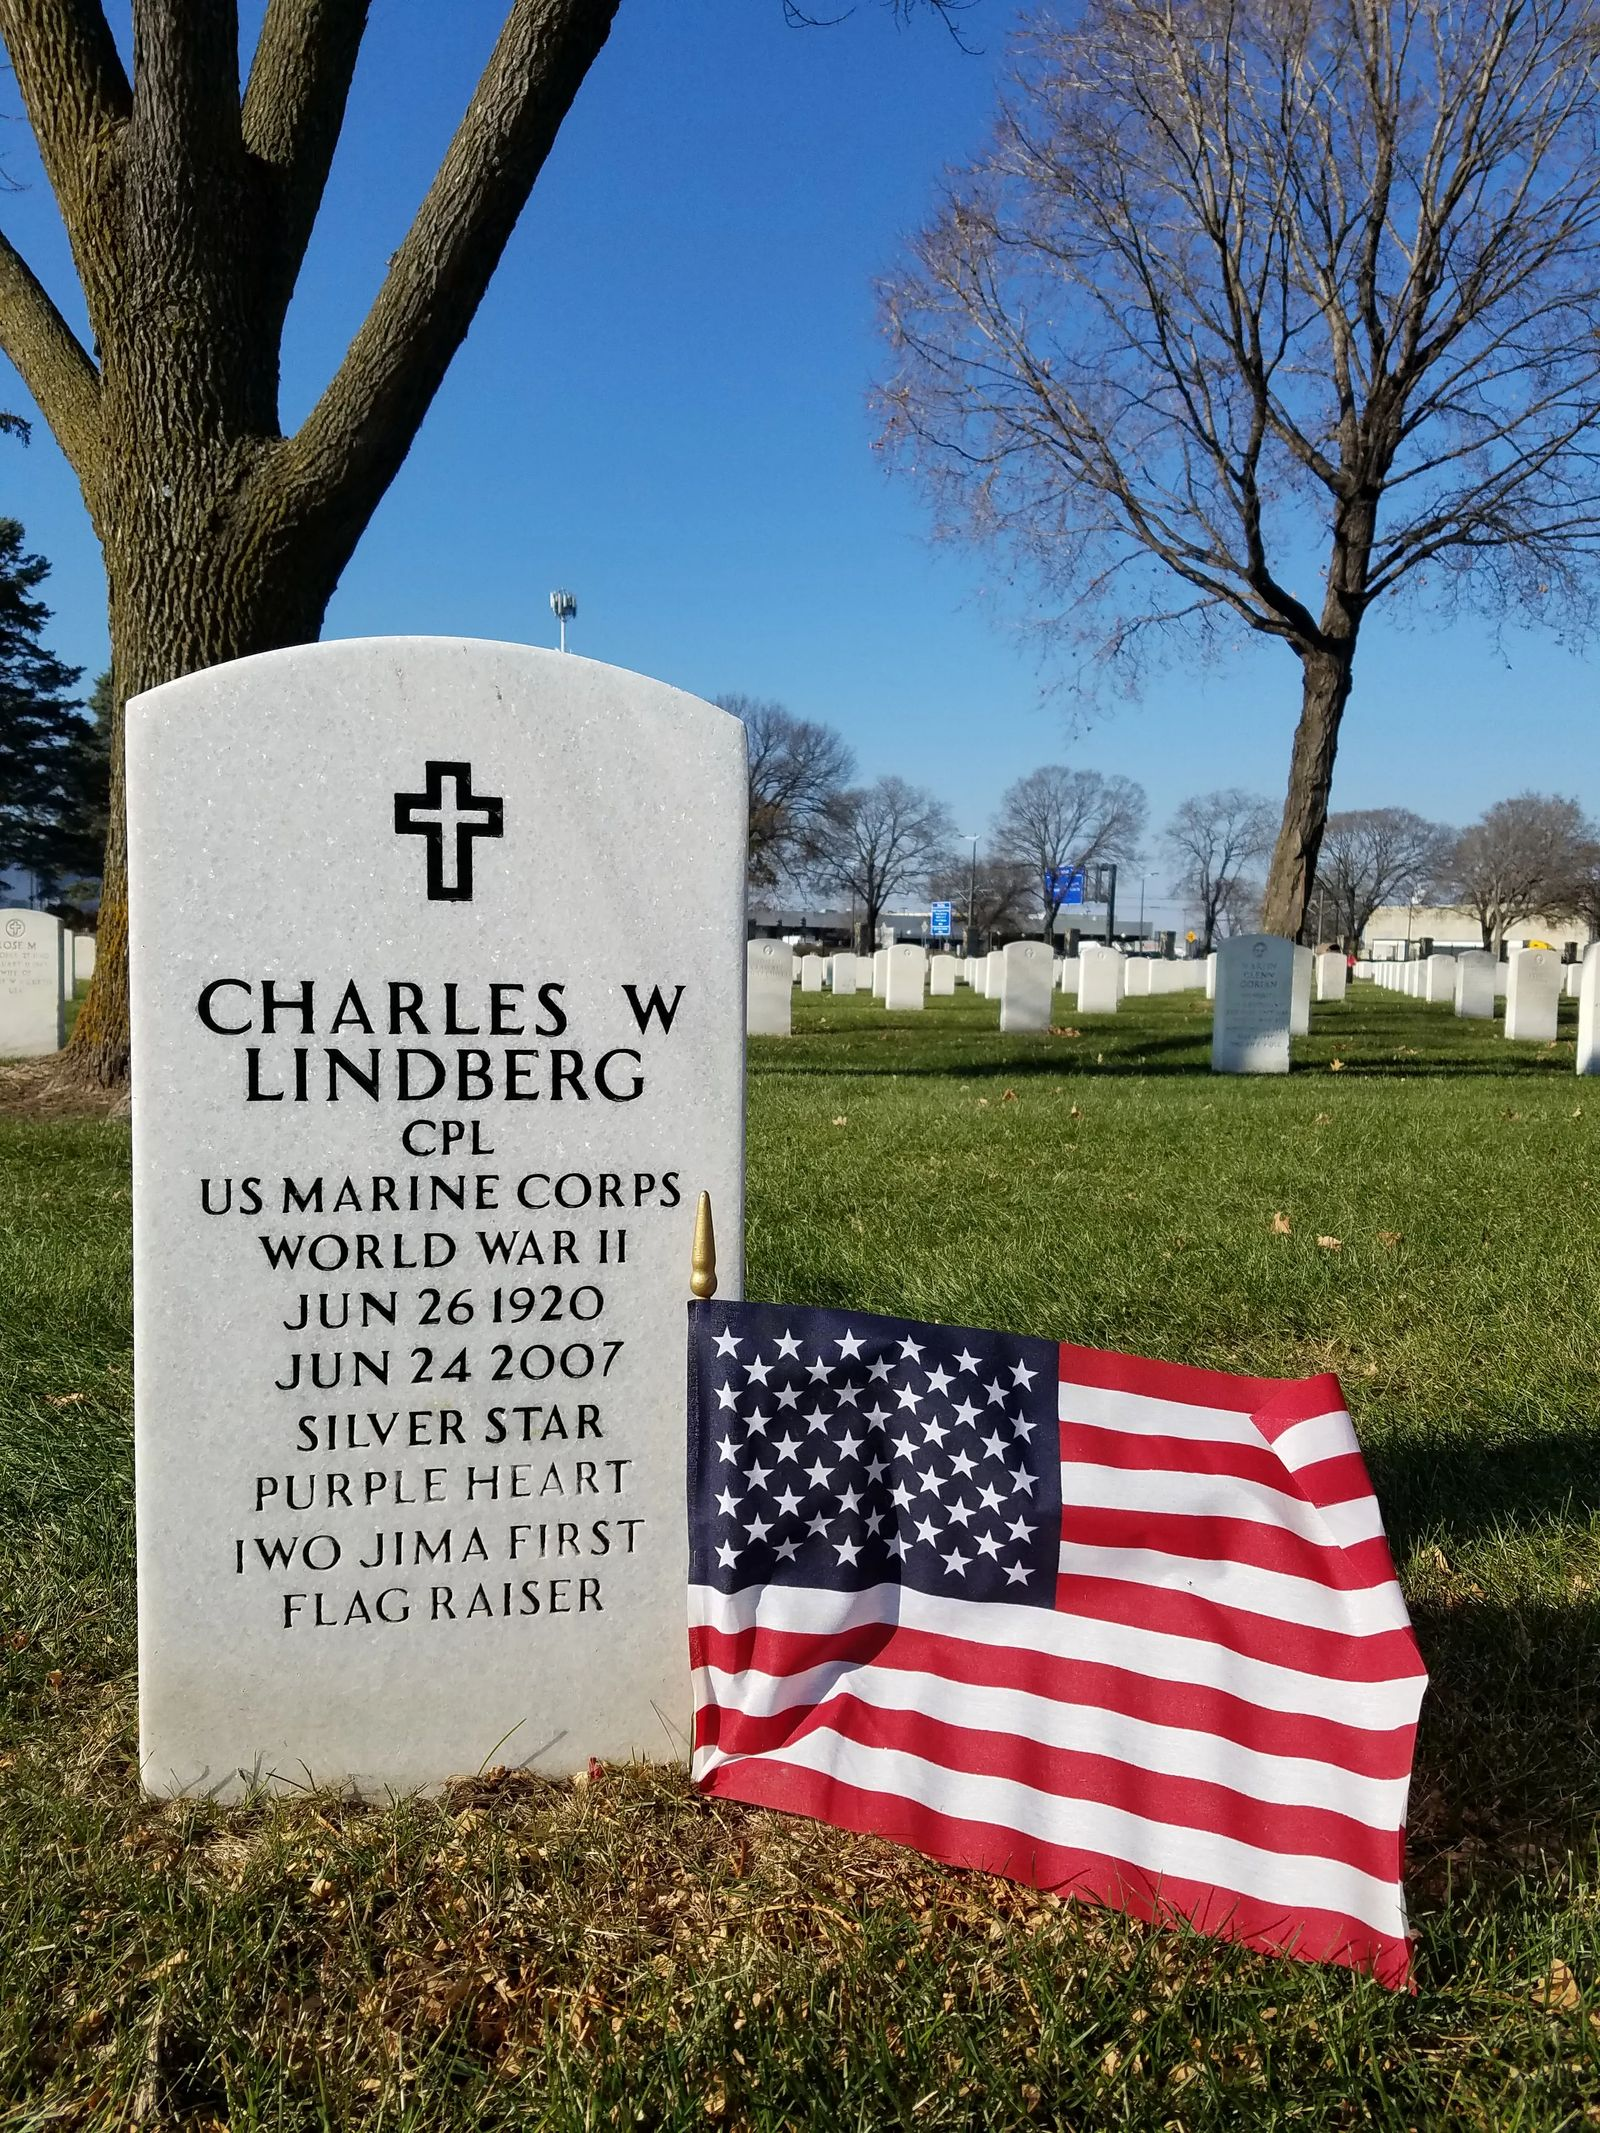 Photo of Charles Lindberg grave site, in Fort Snelling National Cemetery